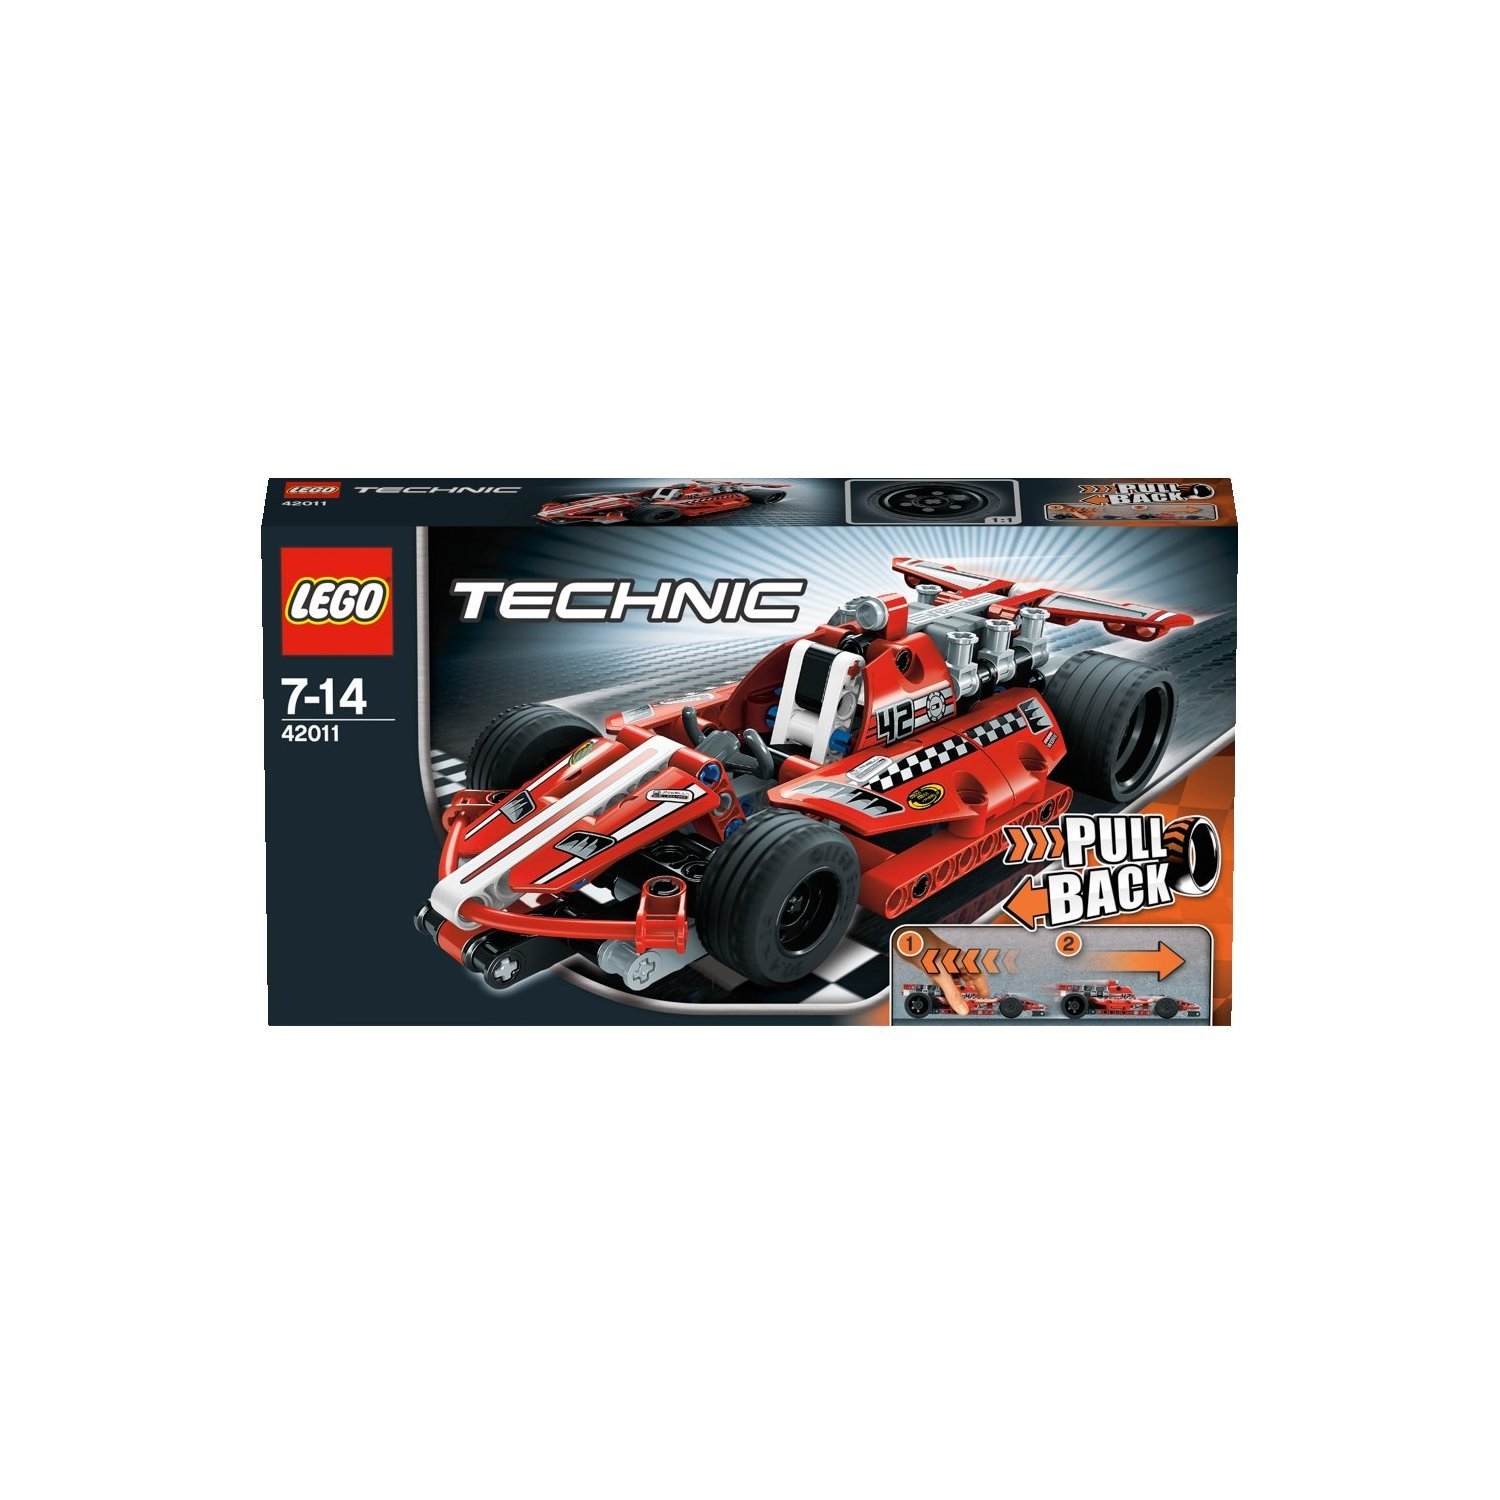 Ultrajeux technic 42011 la voiture de course lego - Jeux de construction lego technic ...